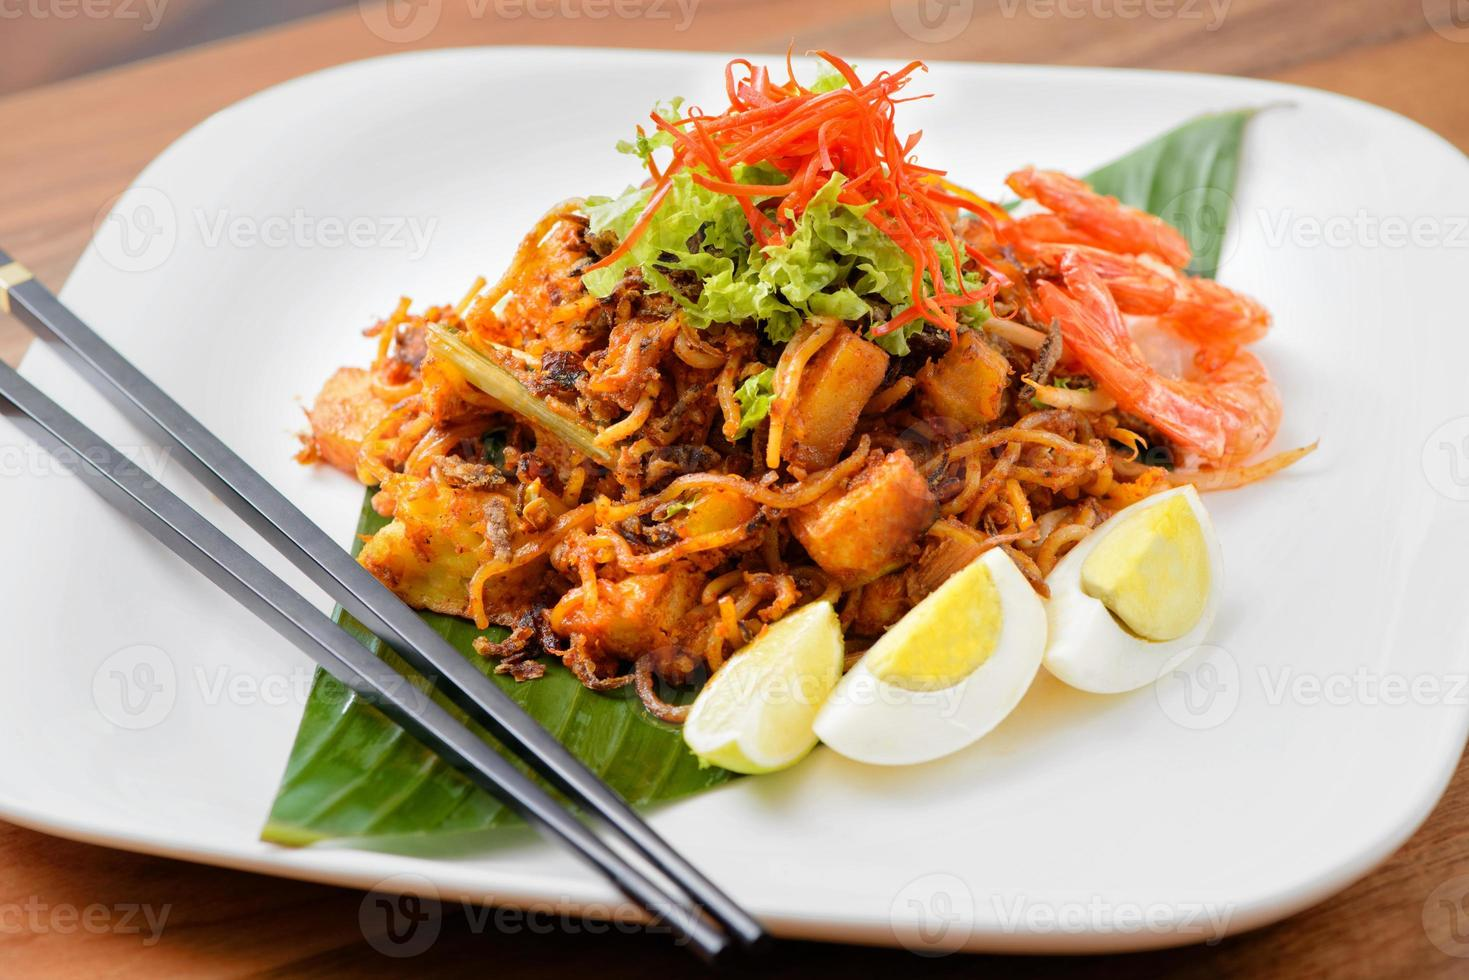 amico indiano noodle (mee goreng) foto